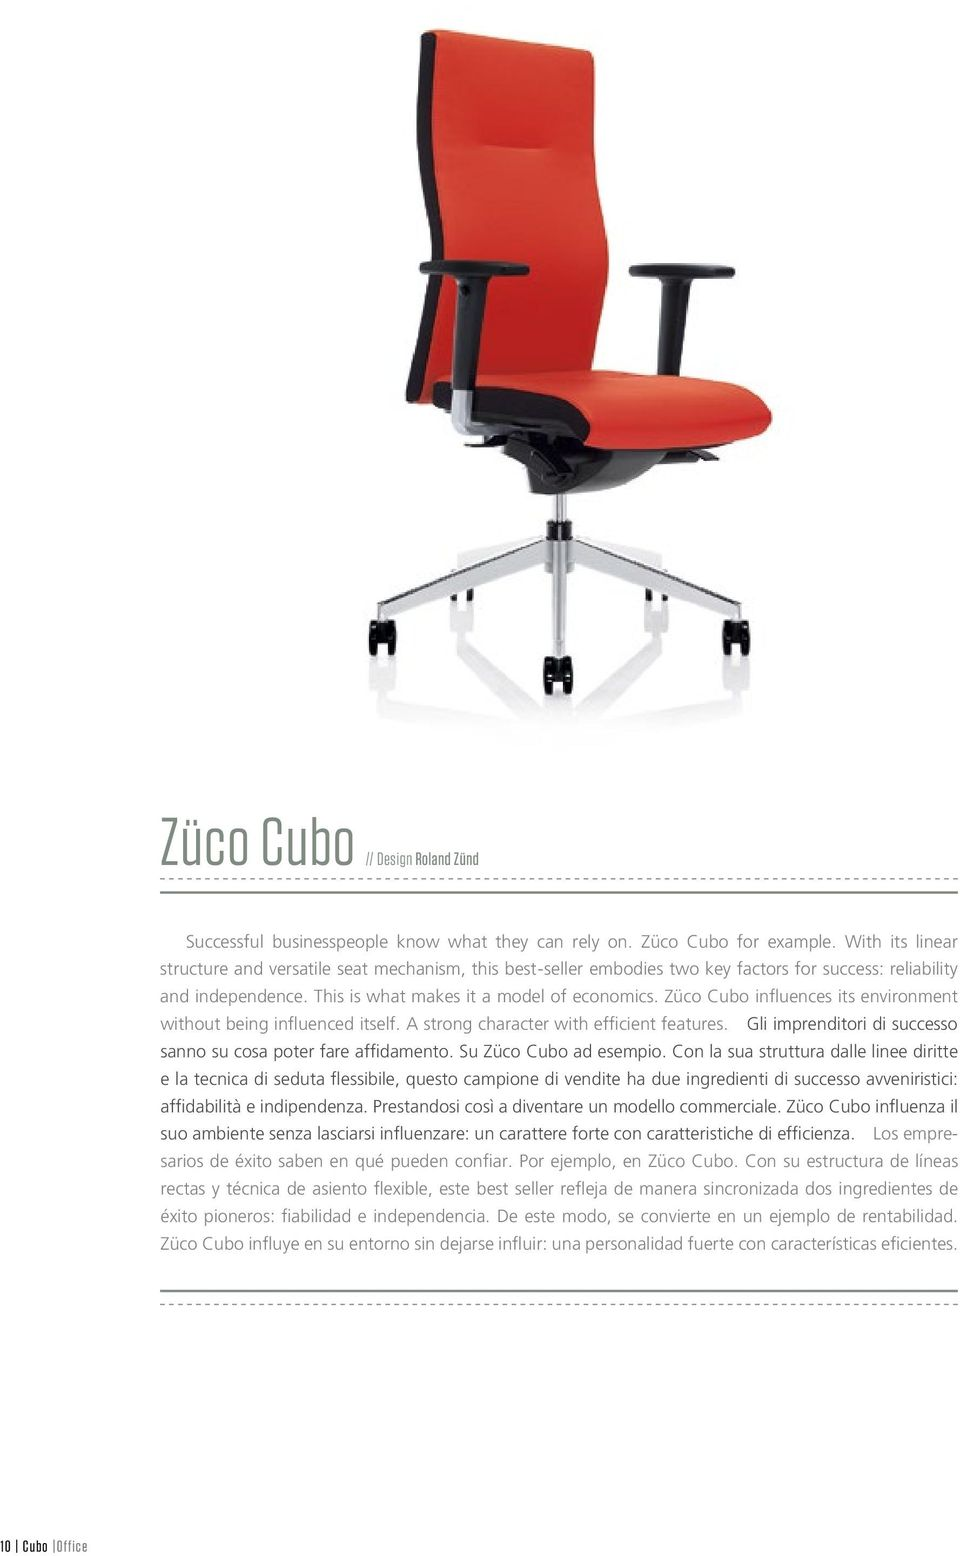 Züco Cubo influences its environment without being influenced itself. A strong character with efficient features. Gli imprenditori di successo sanno su cosa poter fare affidamento.